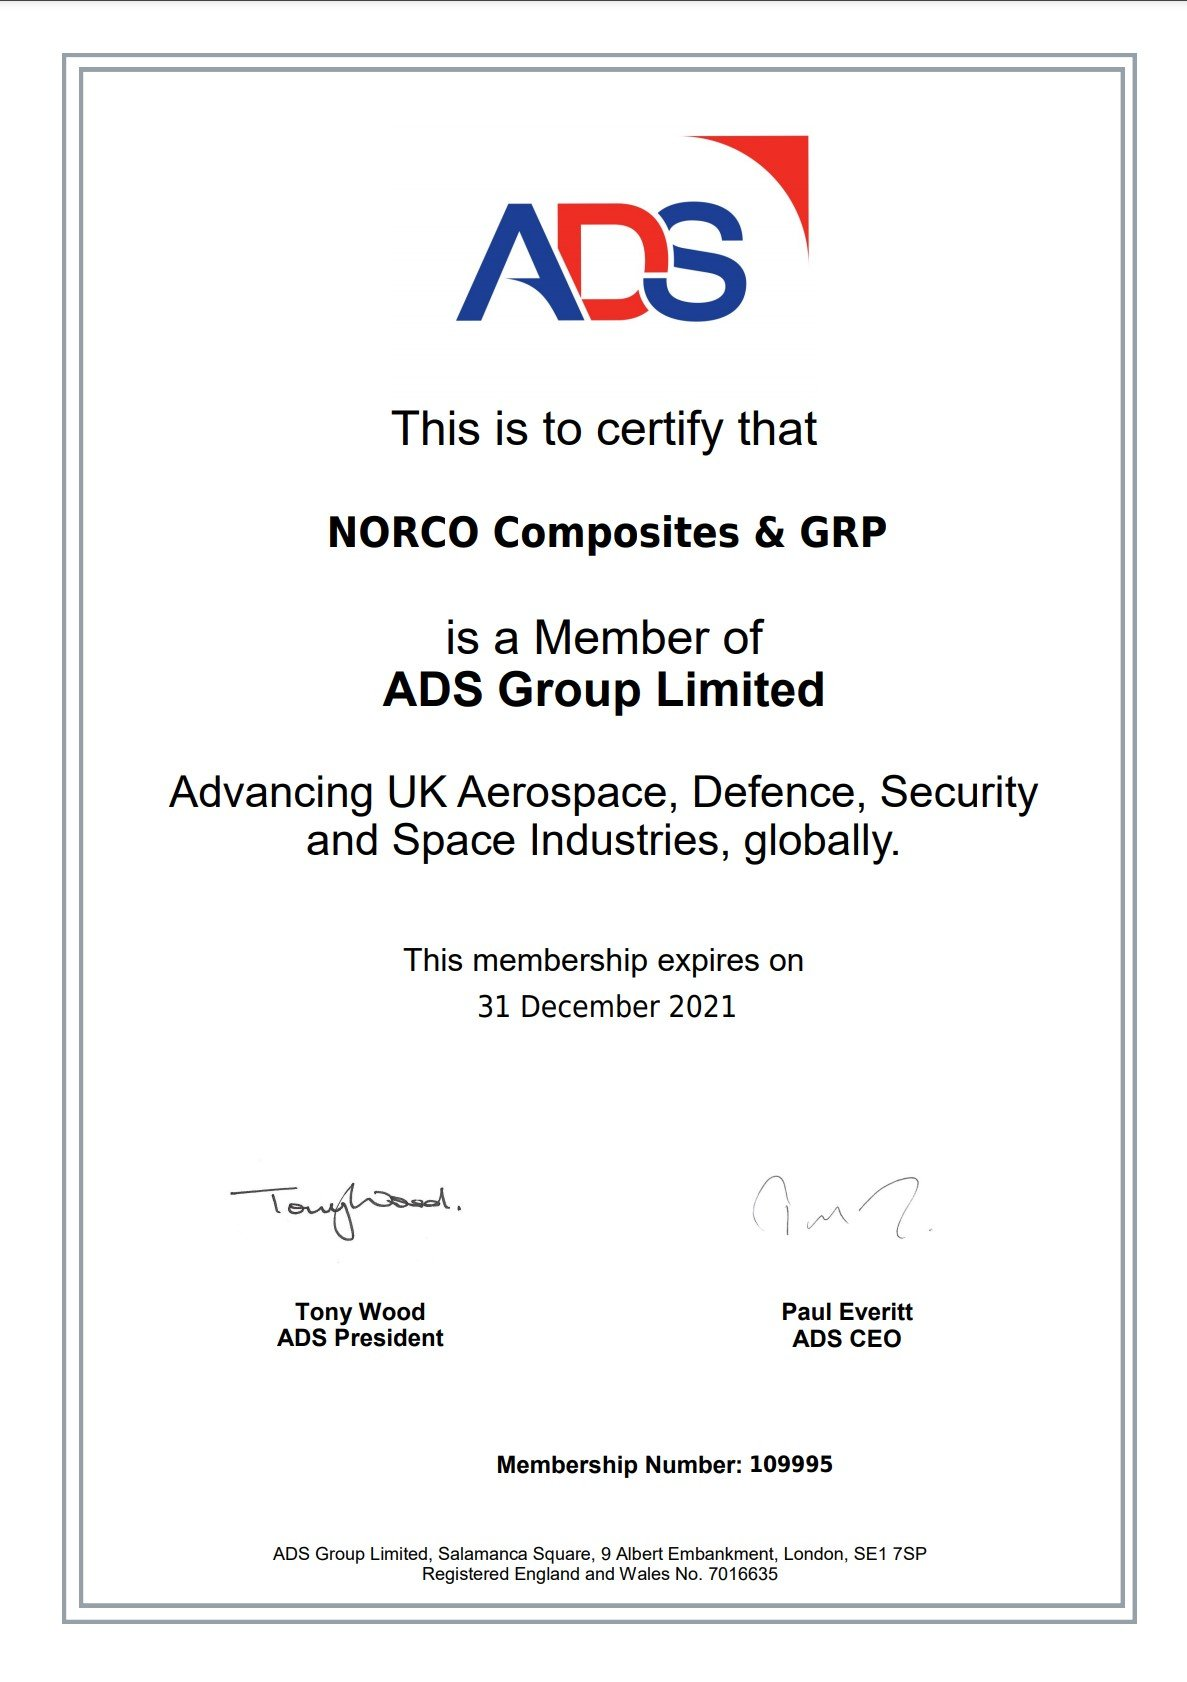 ADS Group Certificate 2021 - NORCO Composites & GRP